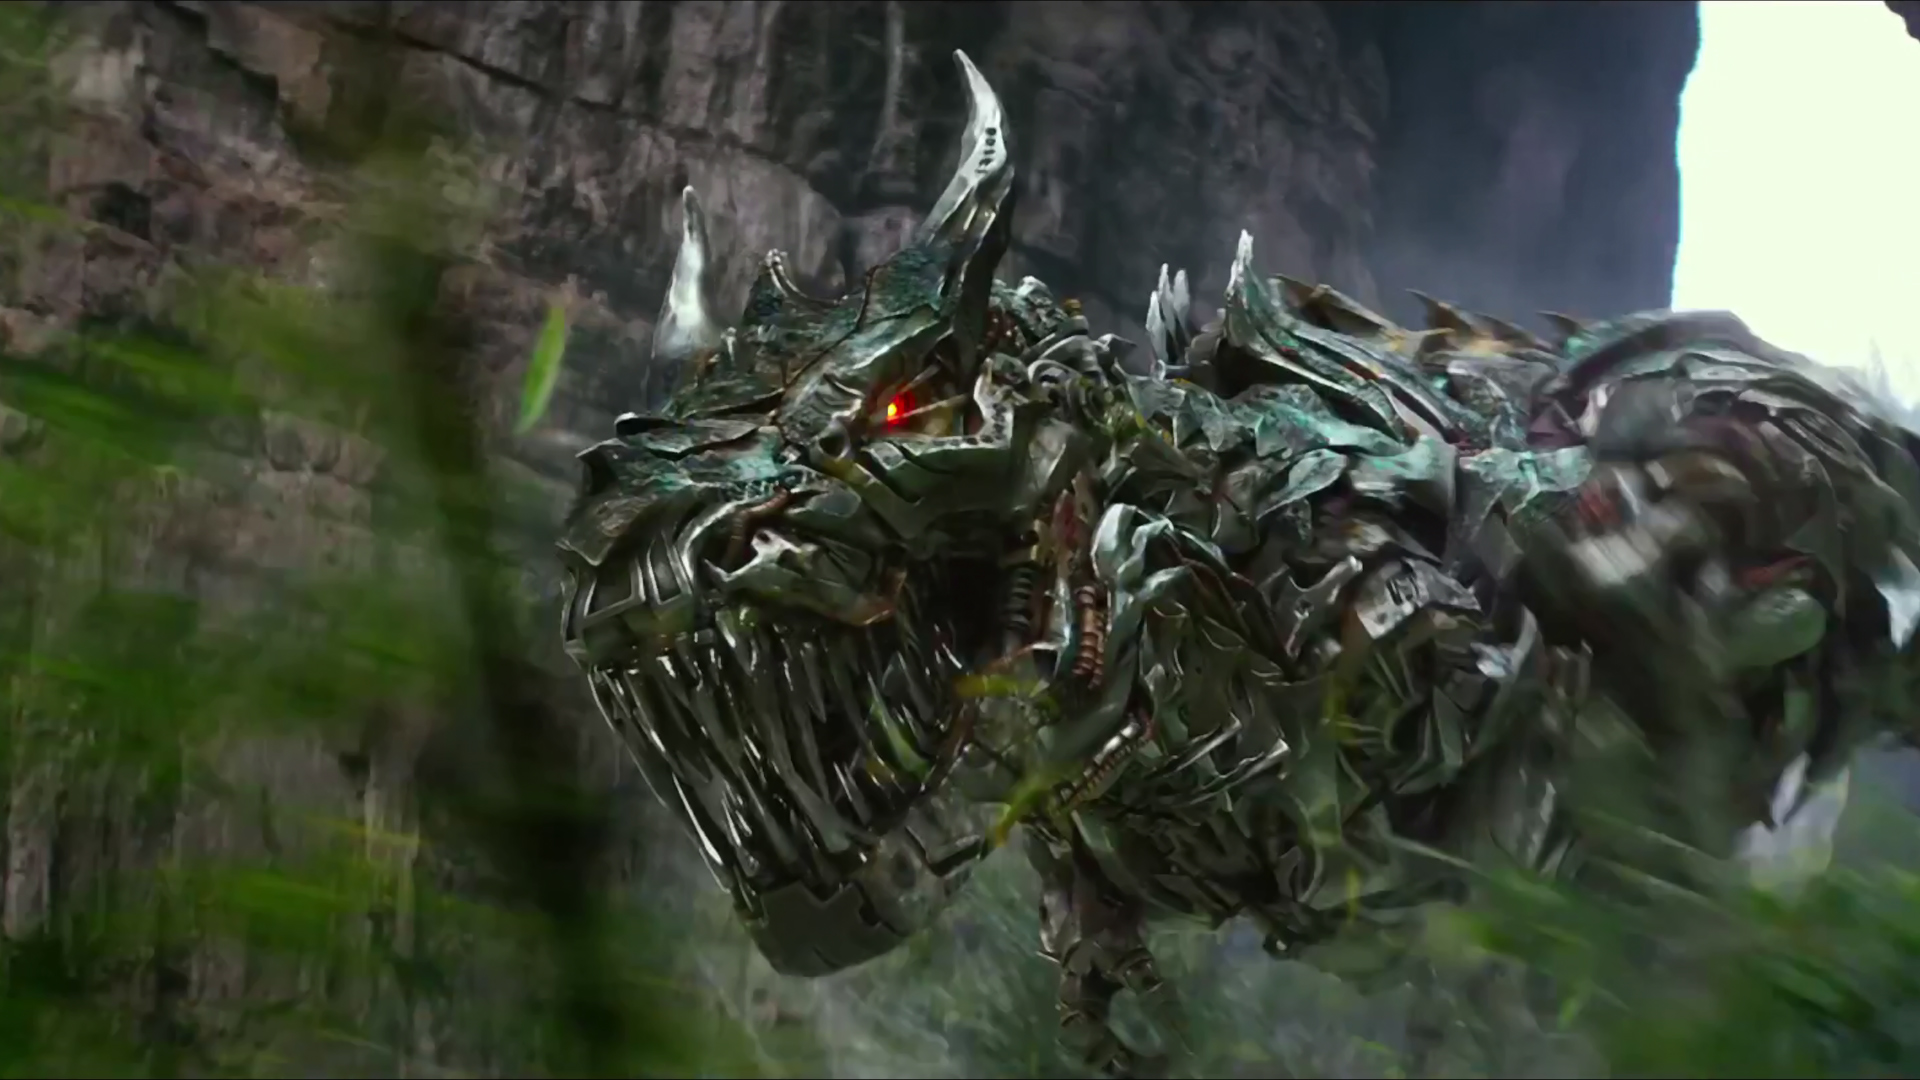 grimlock transformers 4 movie 5o wallpaper hd